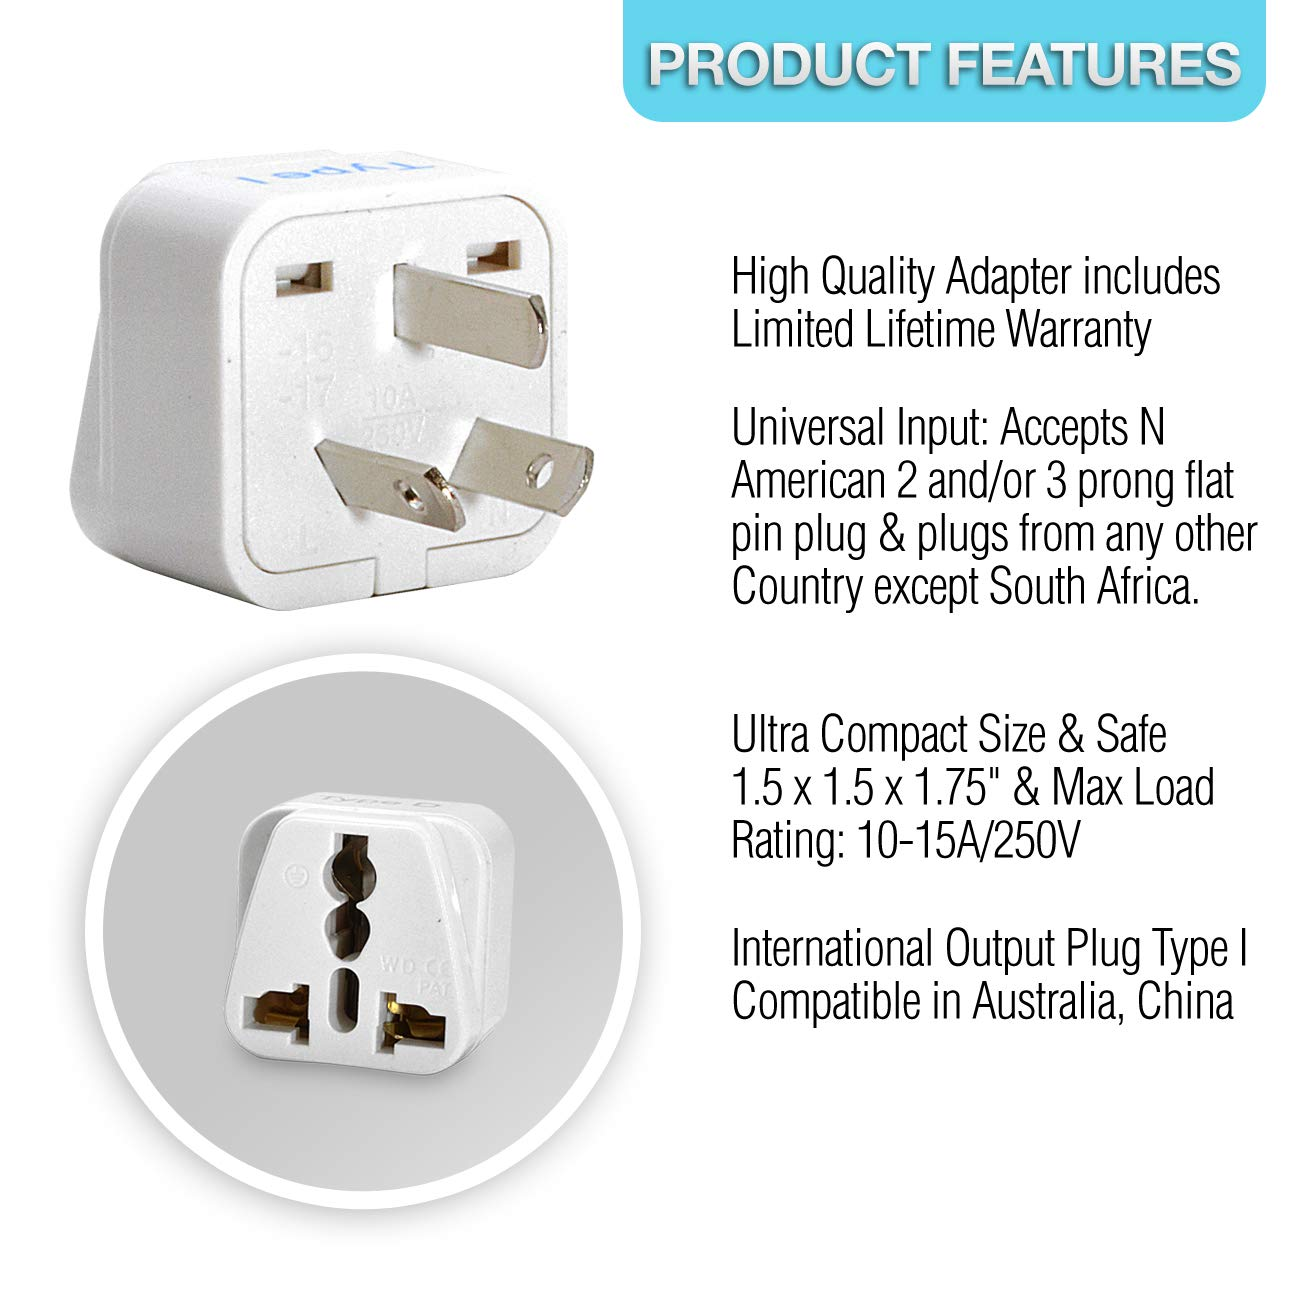 Ceptics Israel Travel Plug Adapter For Palestine 3 Prong Rv Wire Diagram Type H Pack Grounded Universal Gp 14 3pk Home Audio Theater